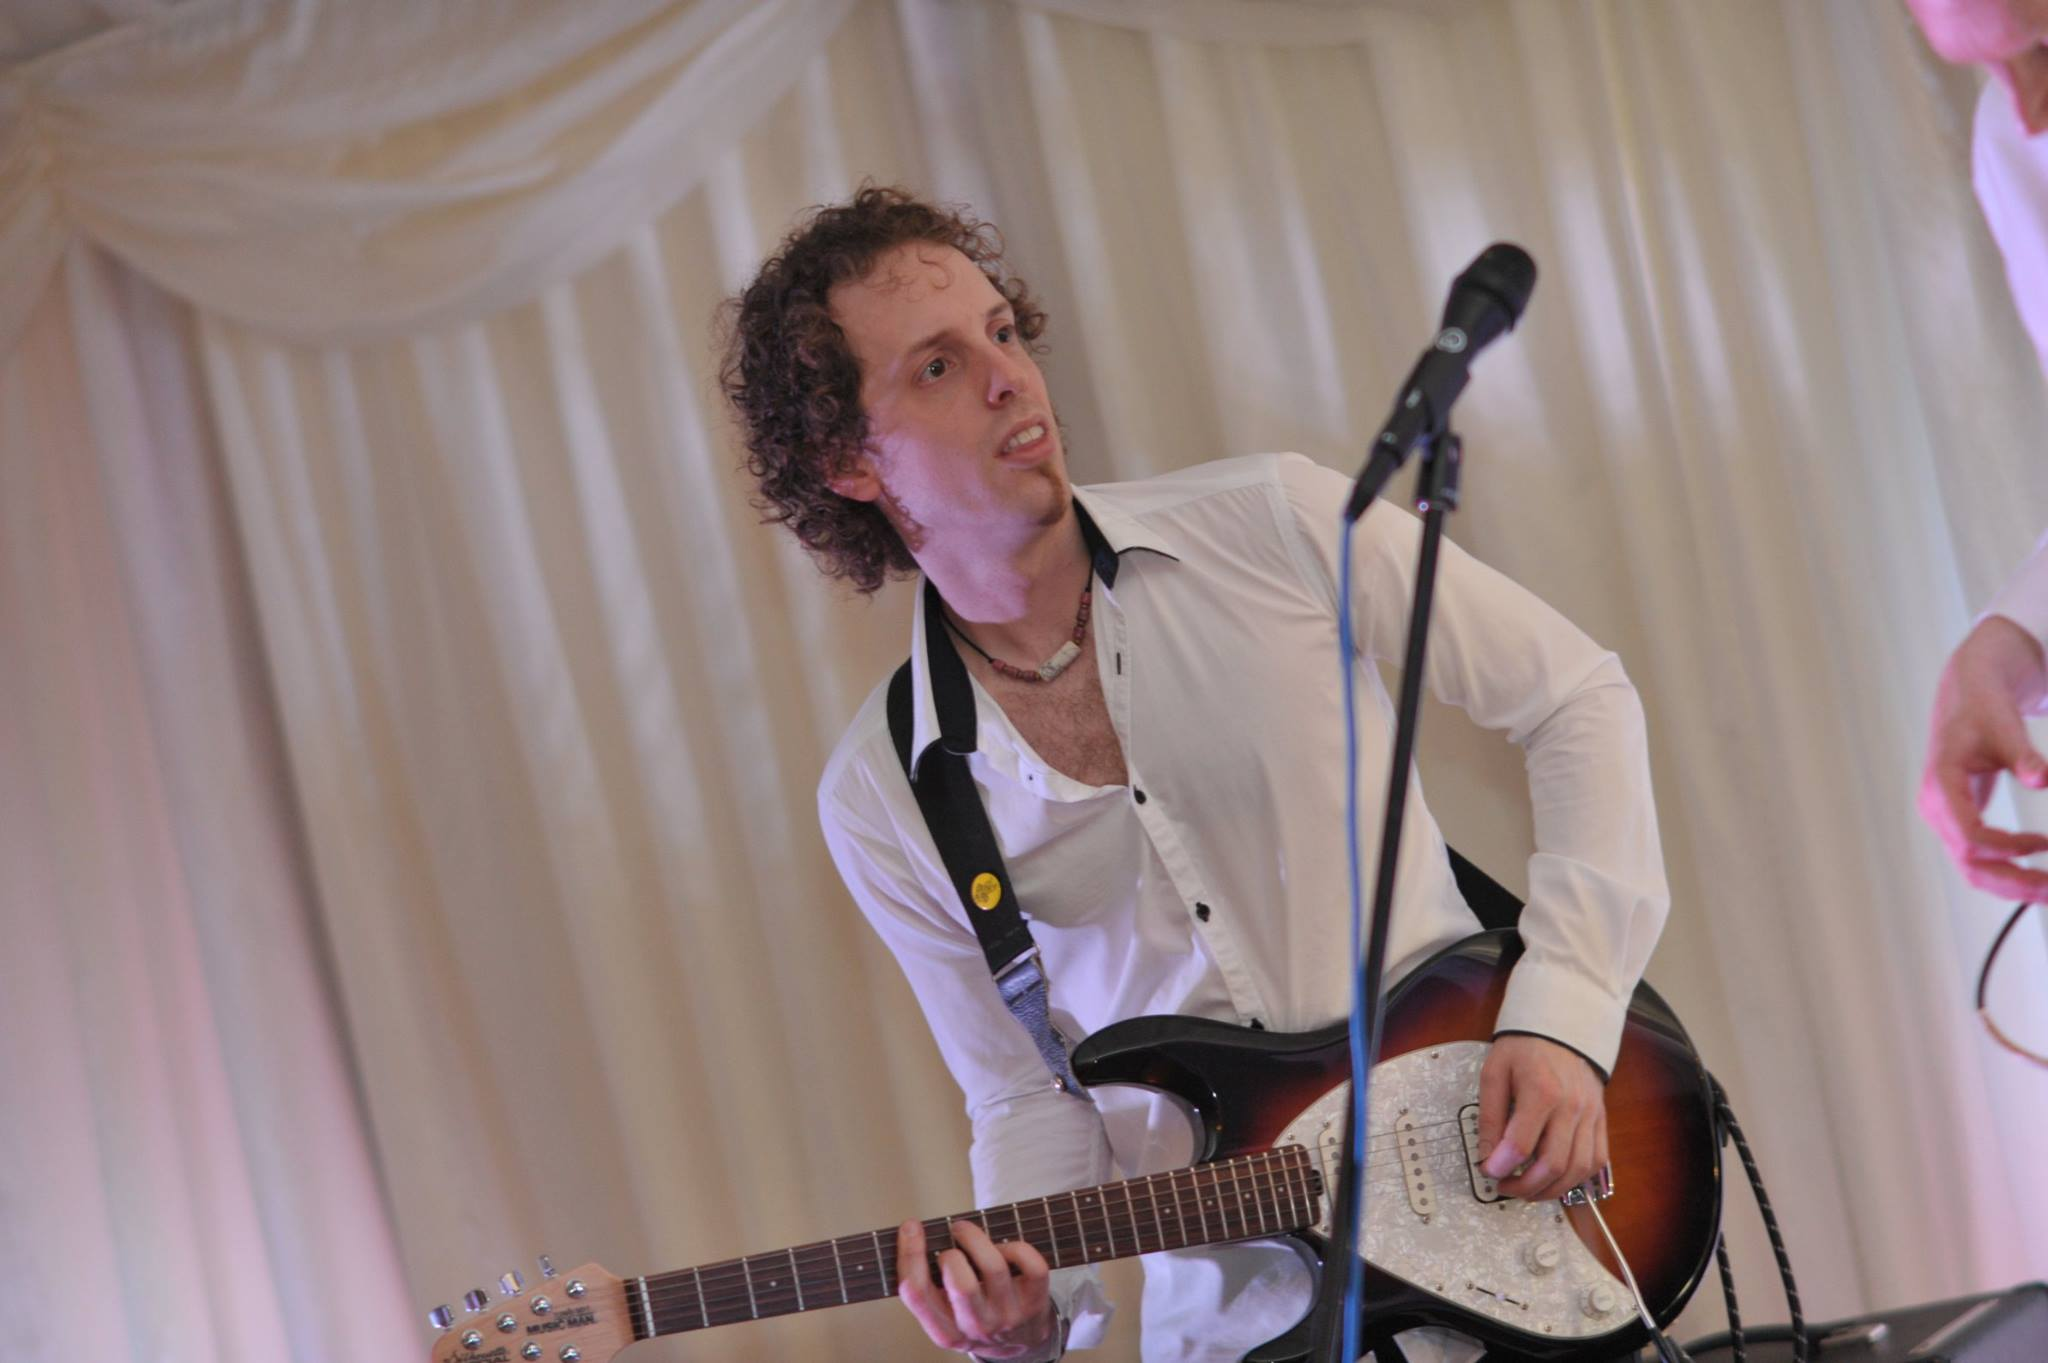 The Heaters Essex Live Wedding band